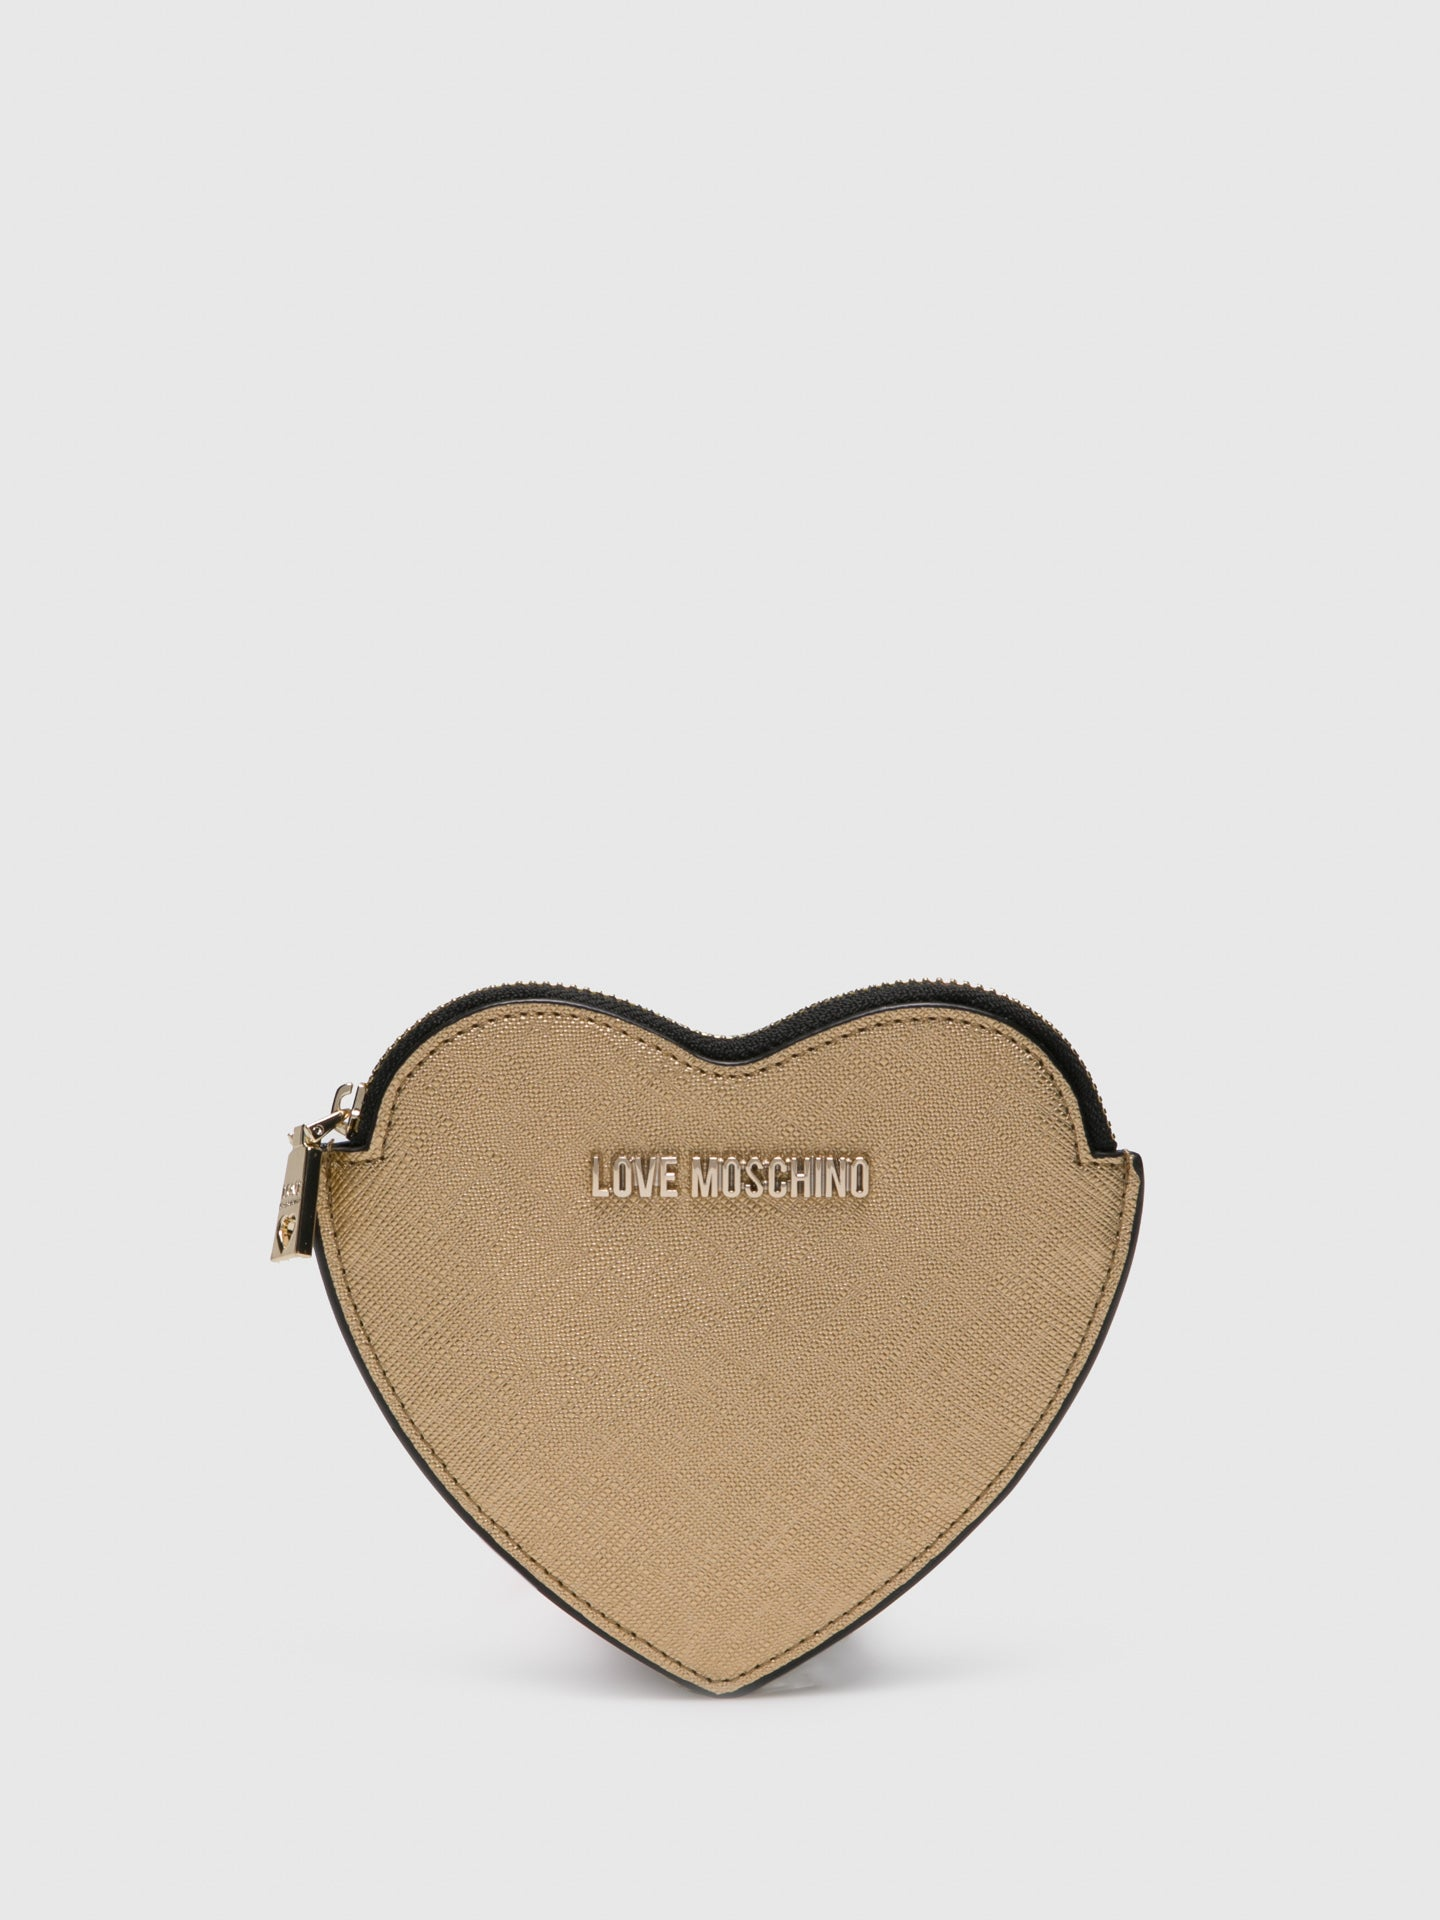 LOVE MOSCHINO Gold Purse